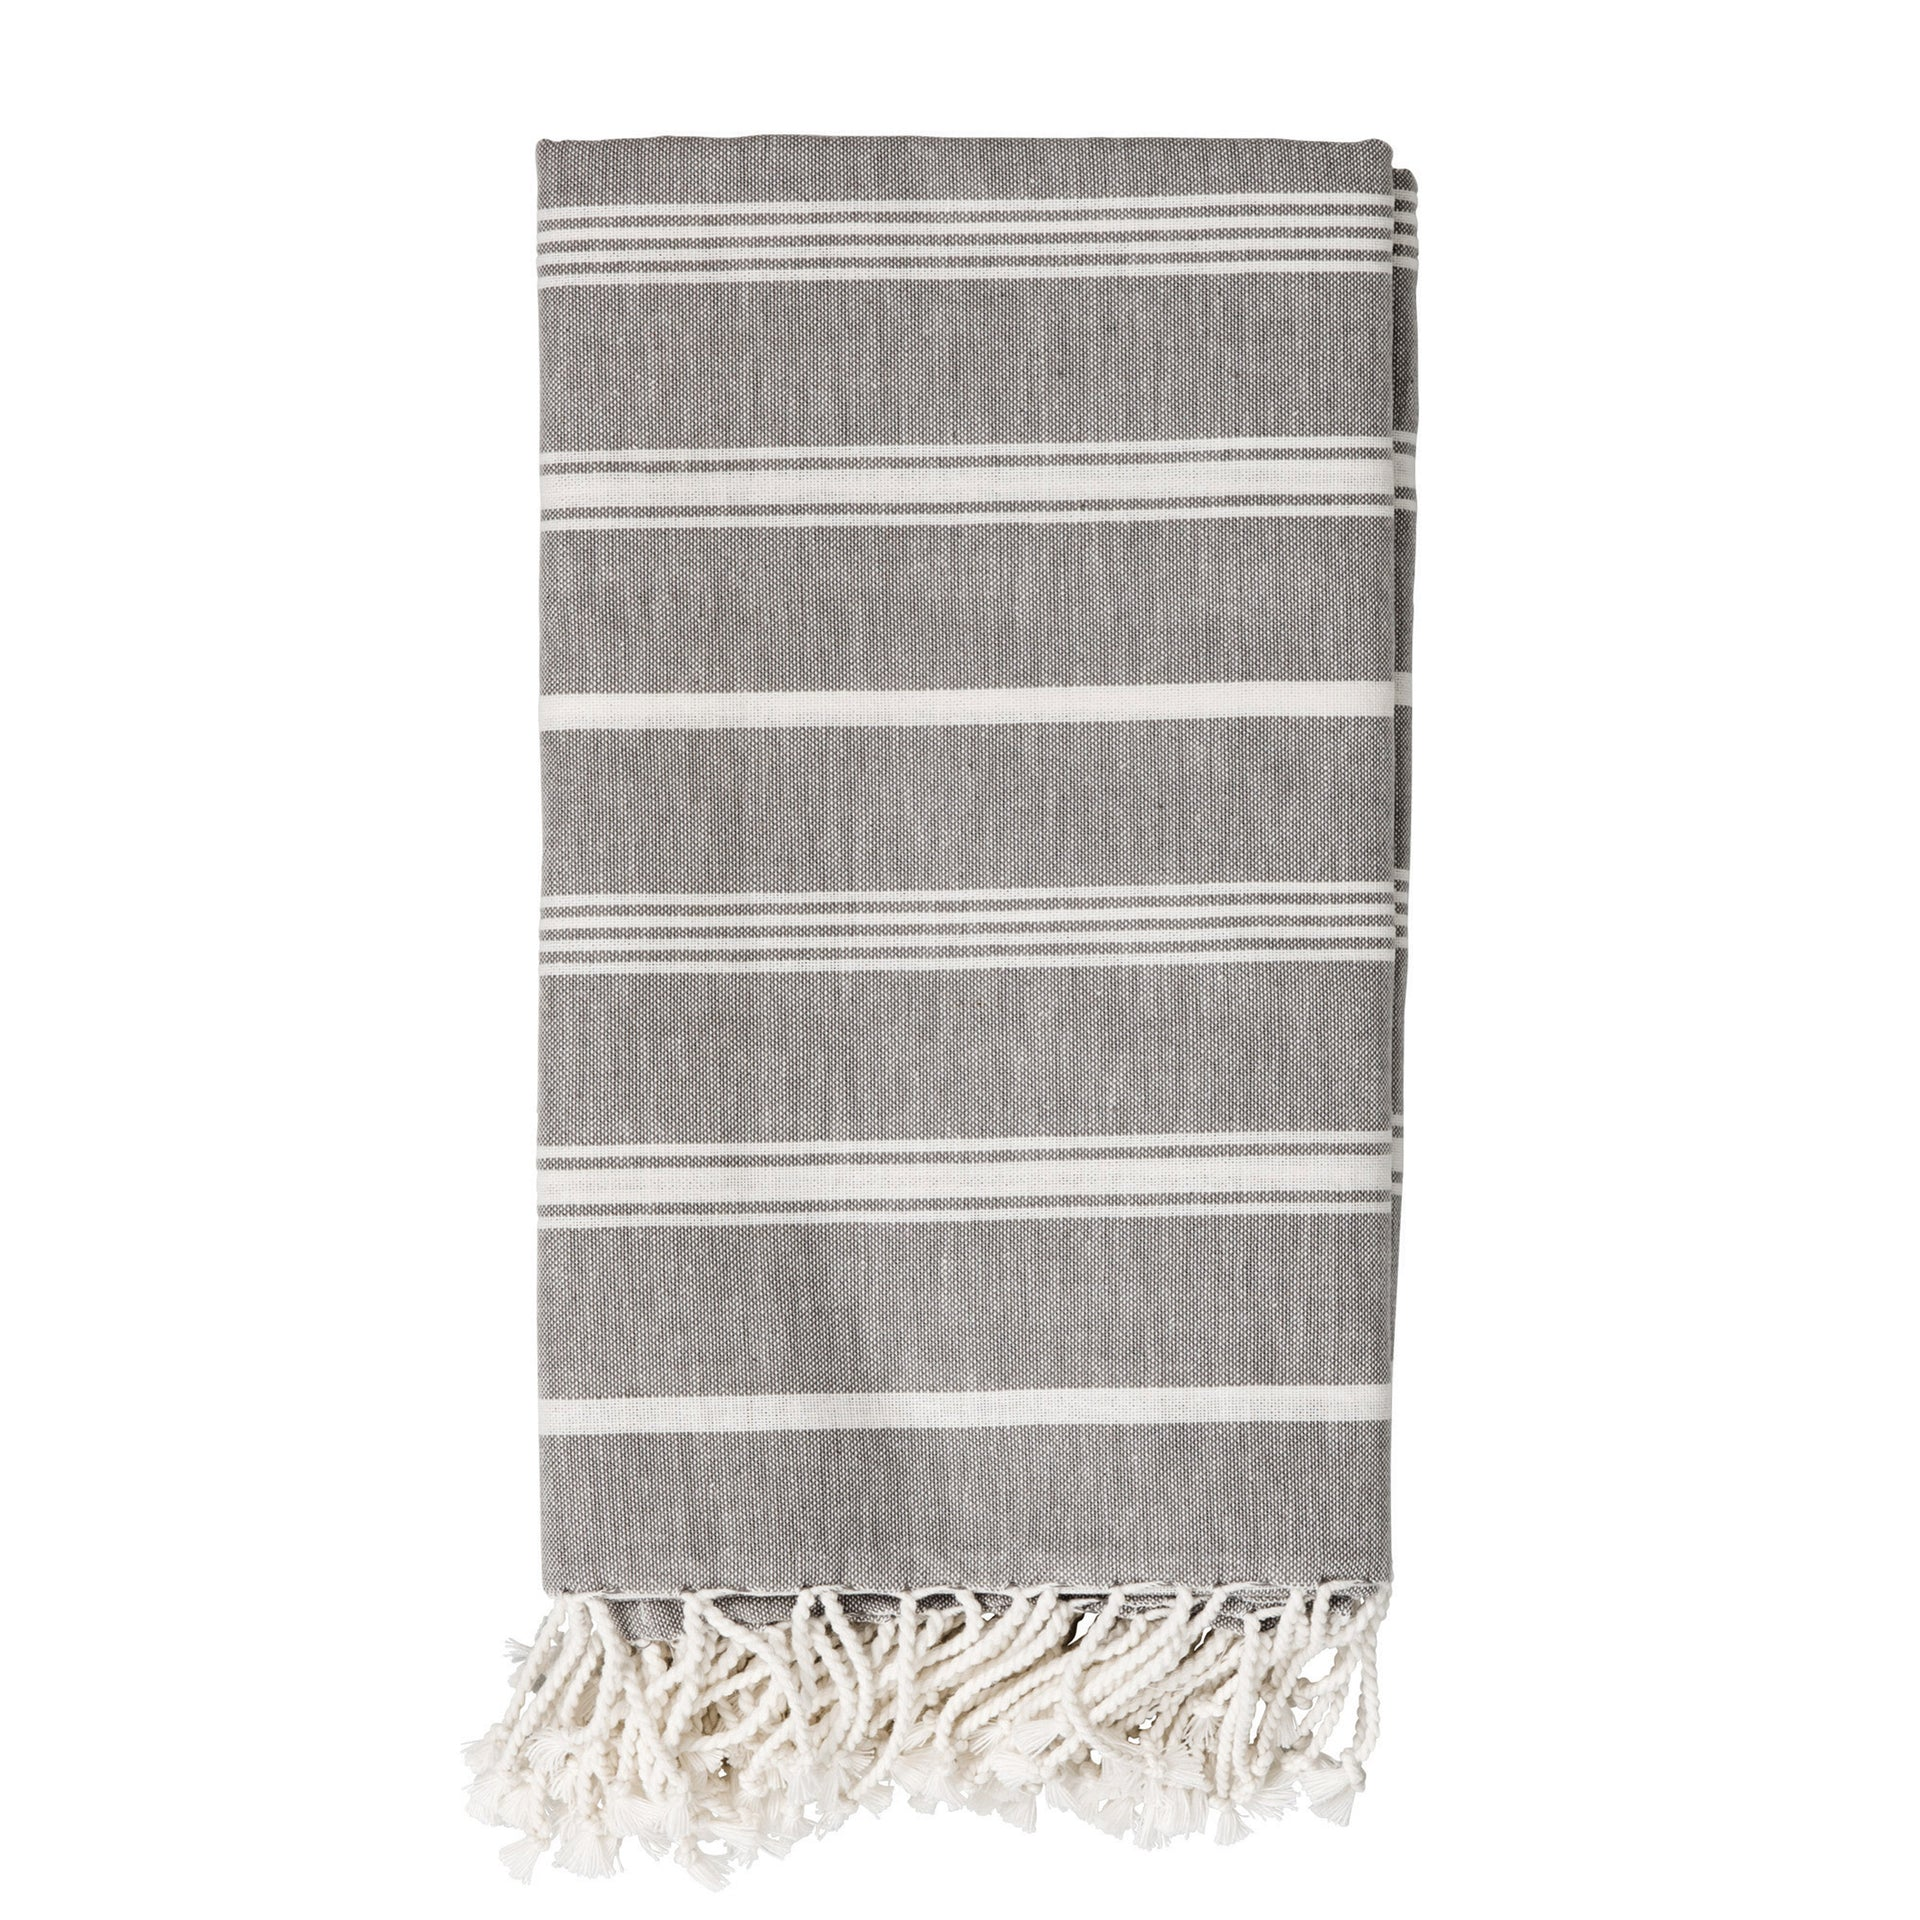 COTTON WOVEN THROWS